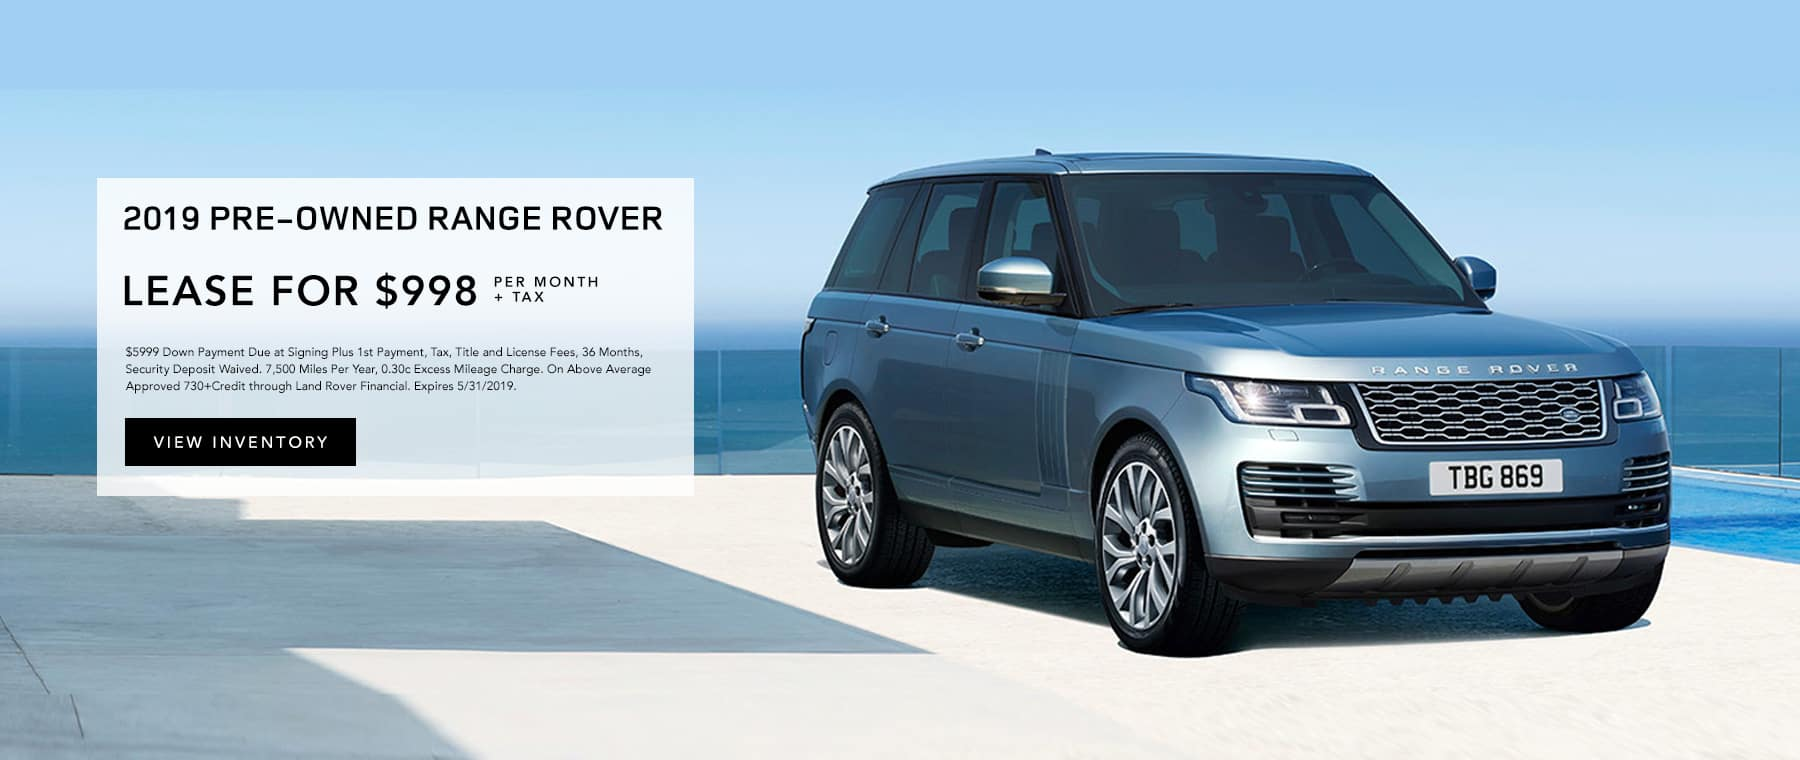 Land Rover Mission Viejo New Used Cars Mission Viejo Ca